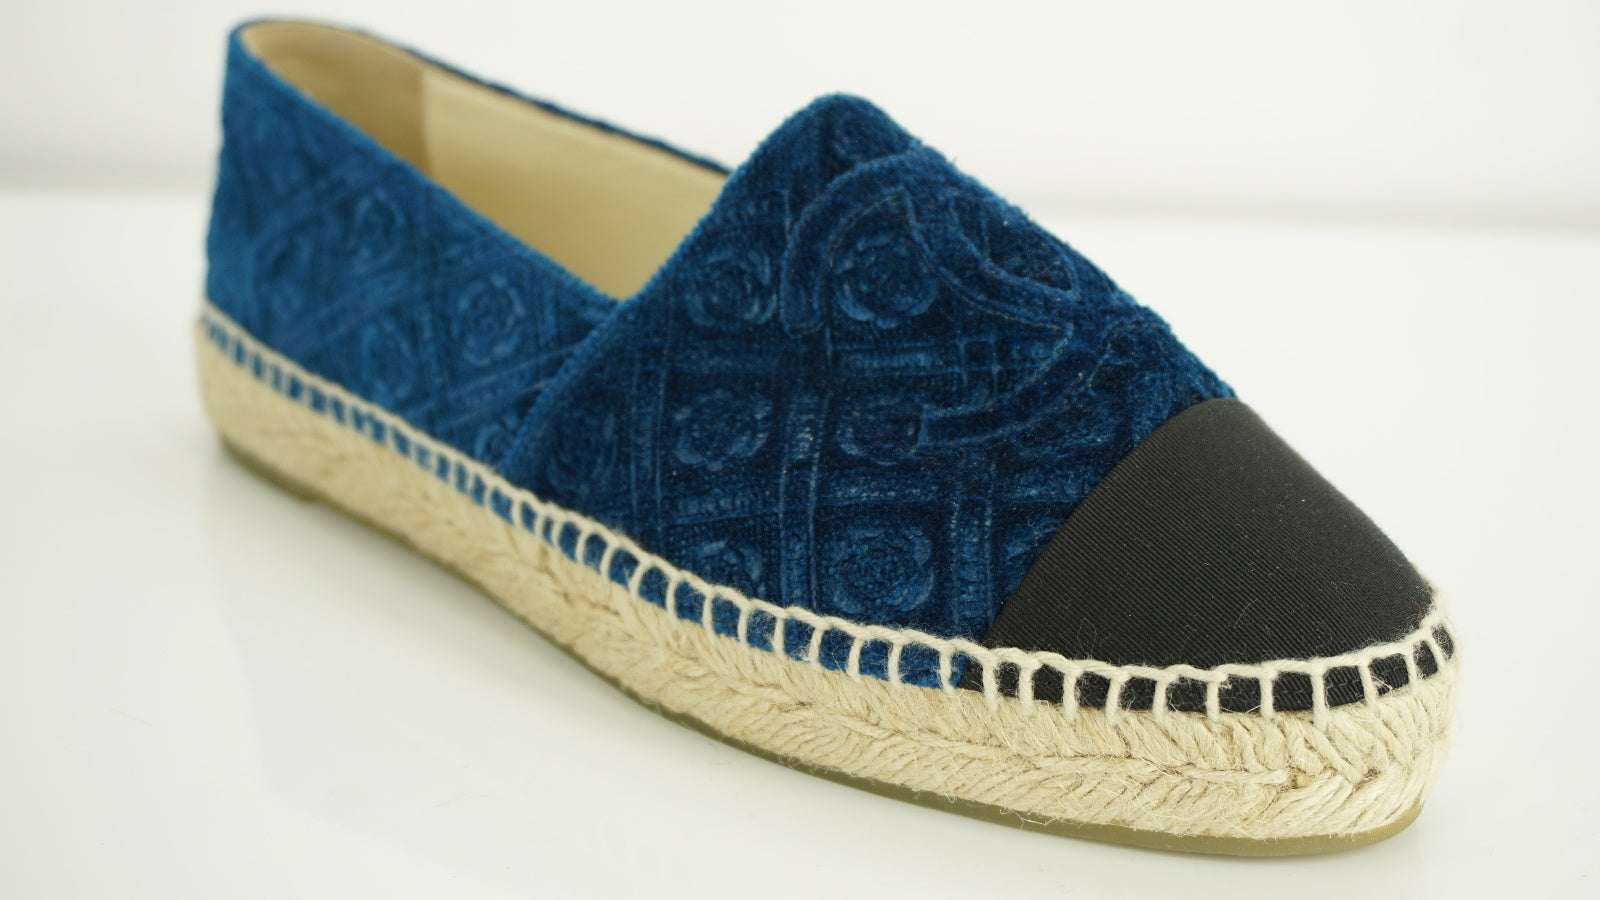 Chanel Cruise Cap Toe Blue Embossed Velvet Espadrille Slip On Sneaker SZ 37 NIB